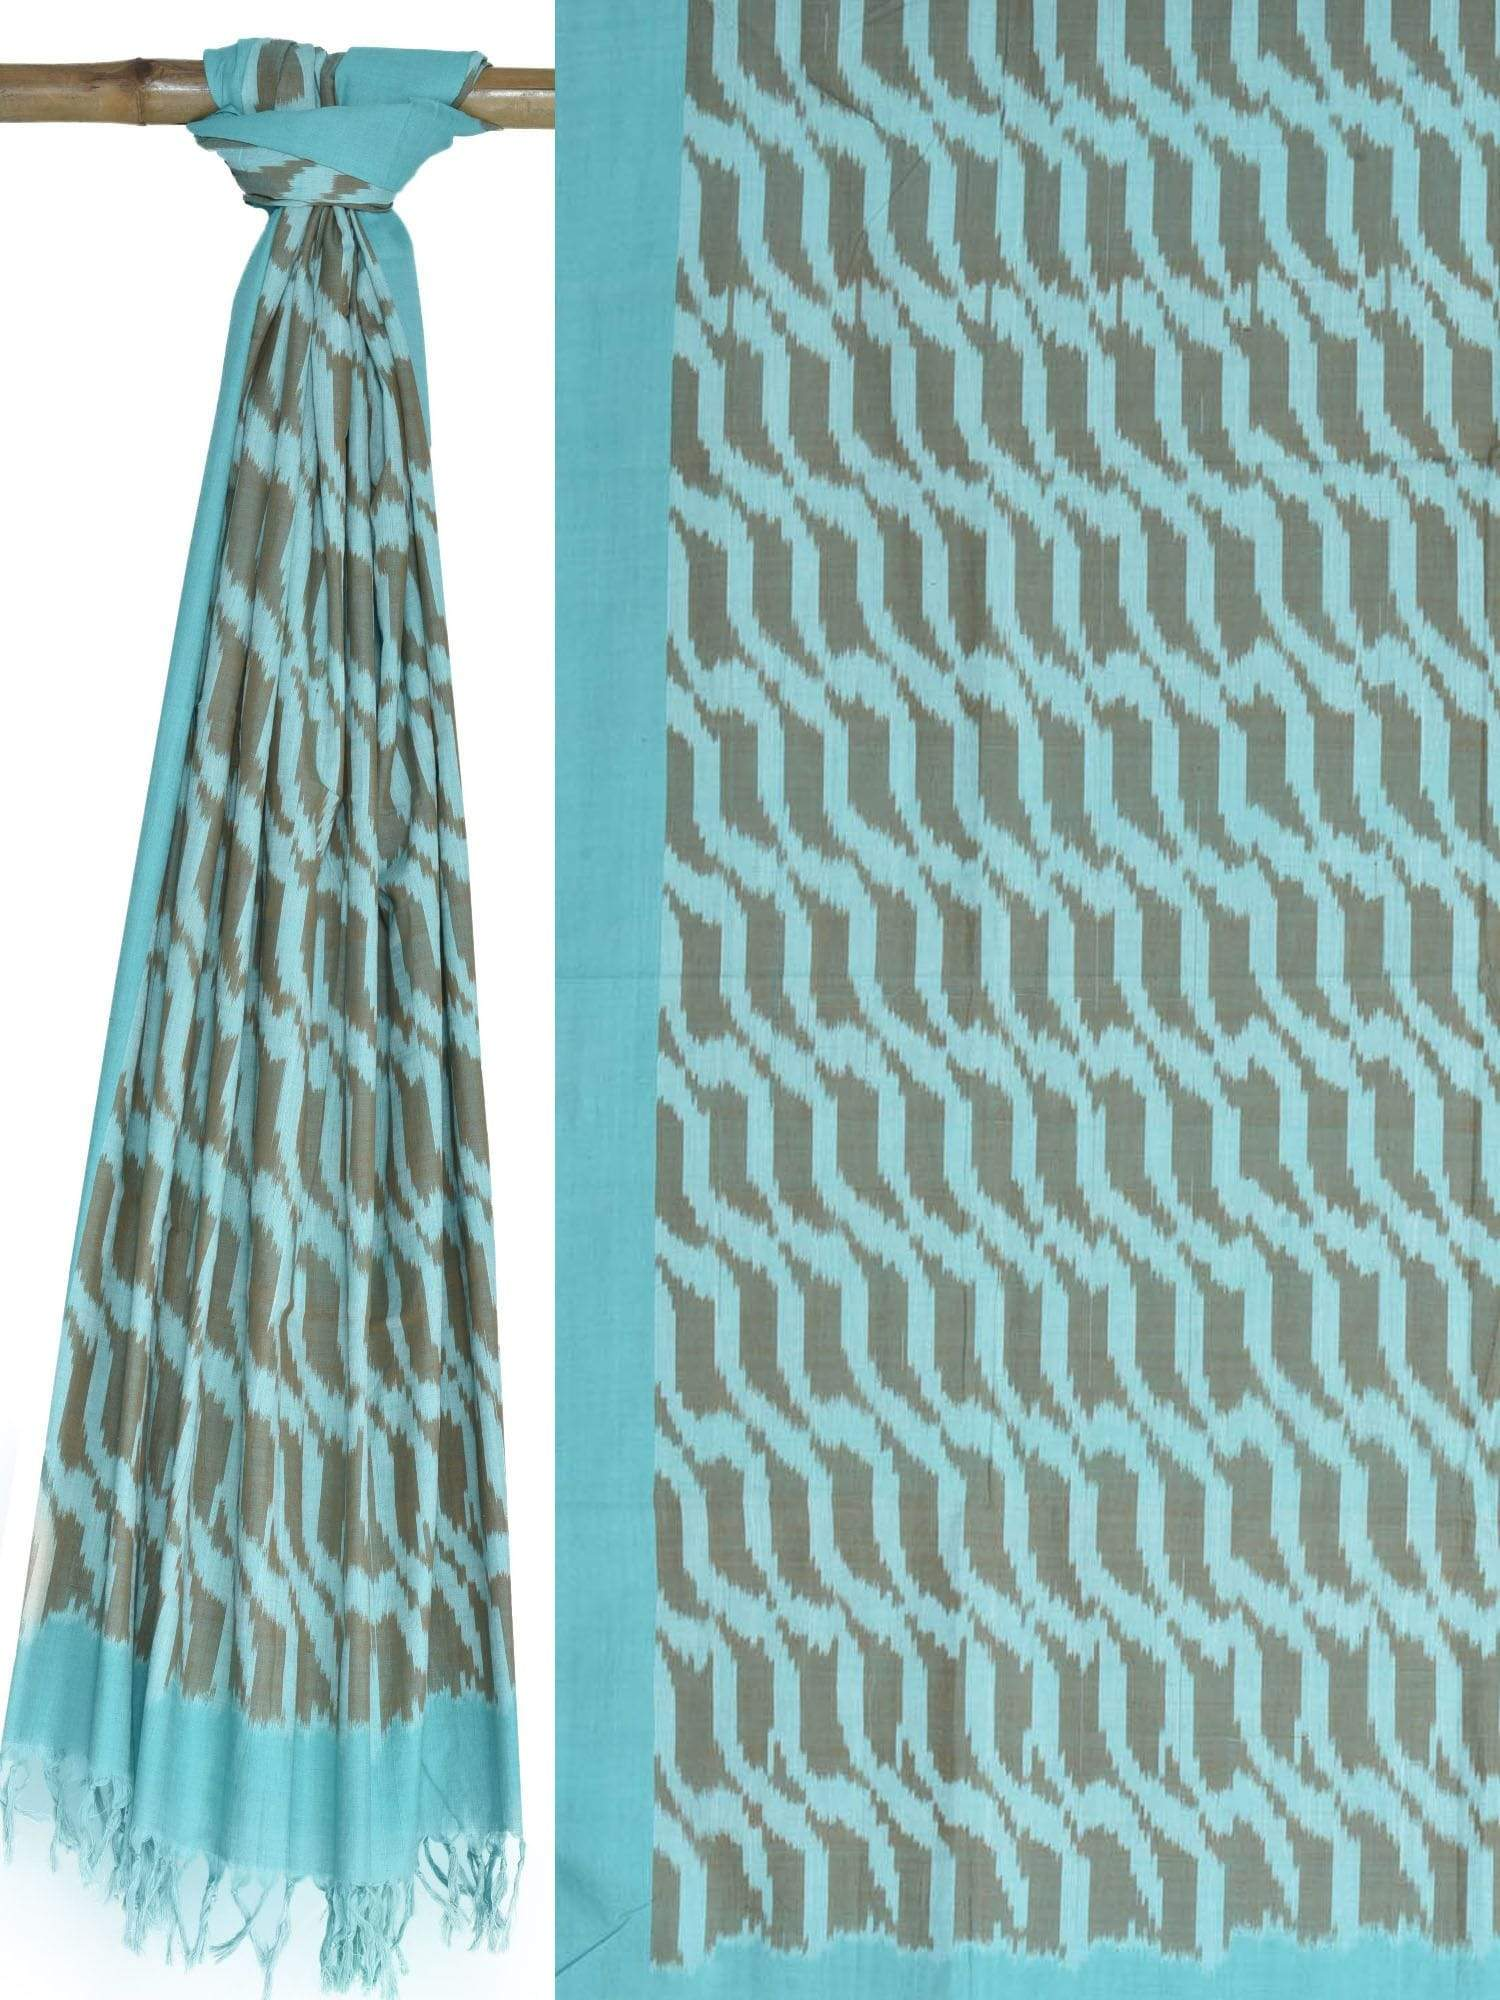 Turquoise Pochampally Ikat Cotton Handloom Dupatta with Diagonal Design ds1619